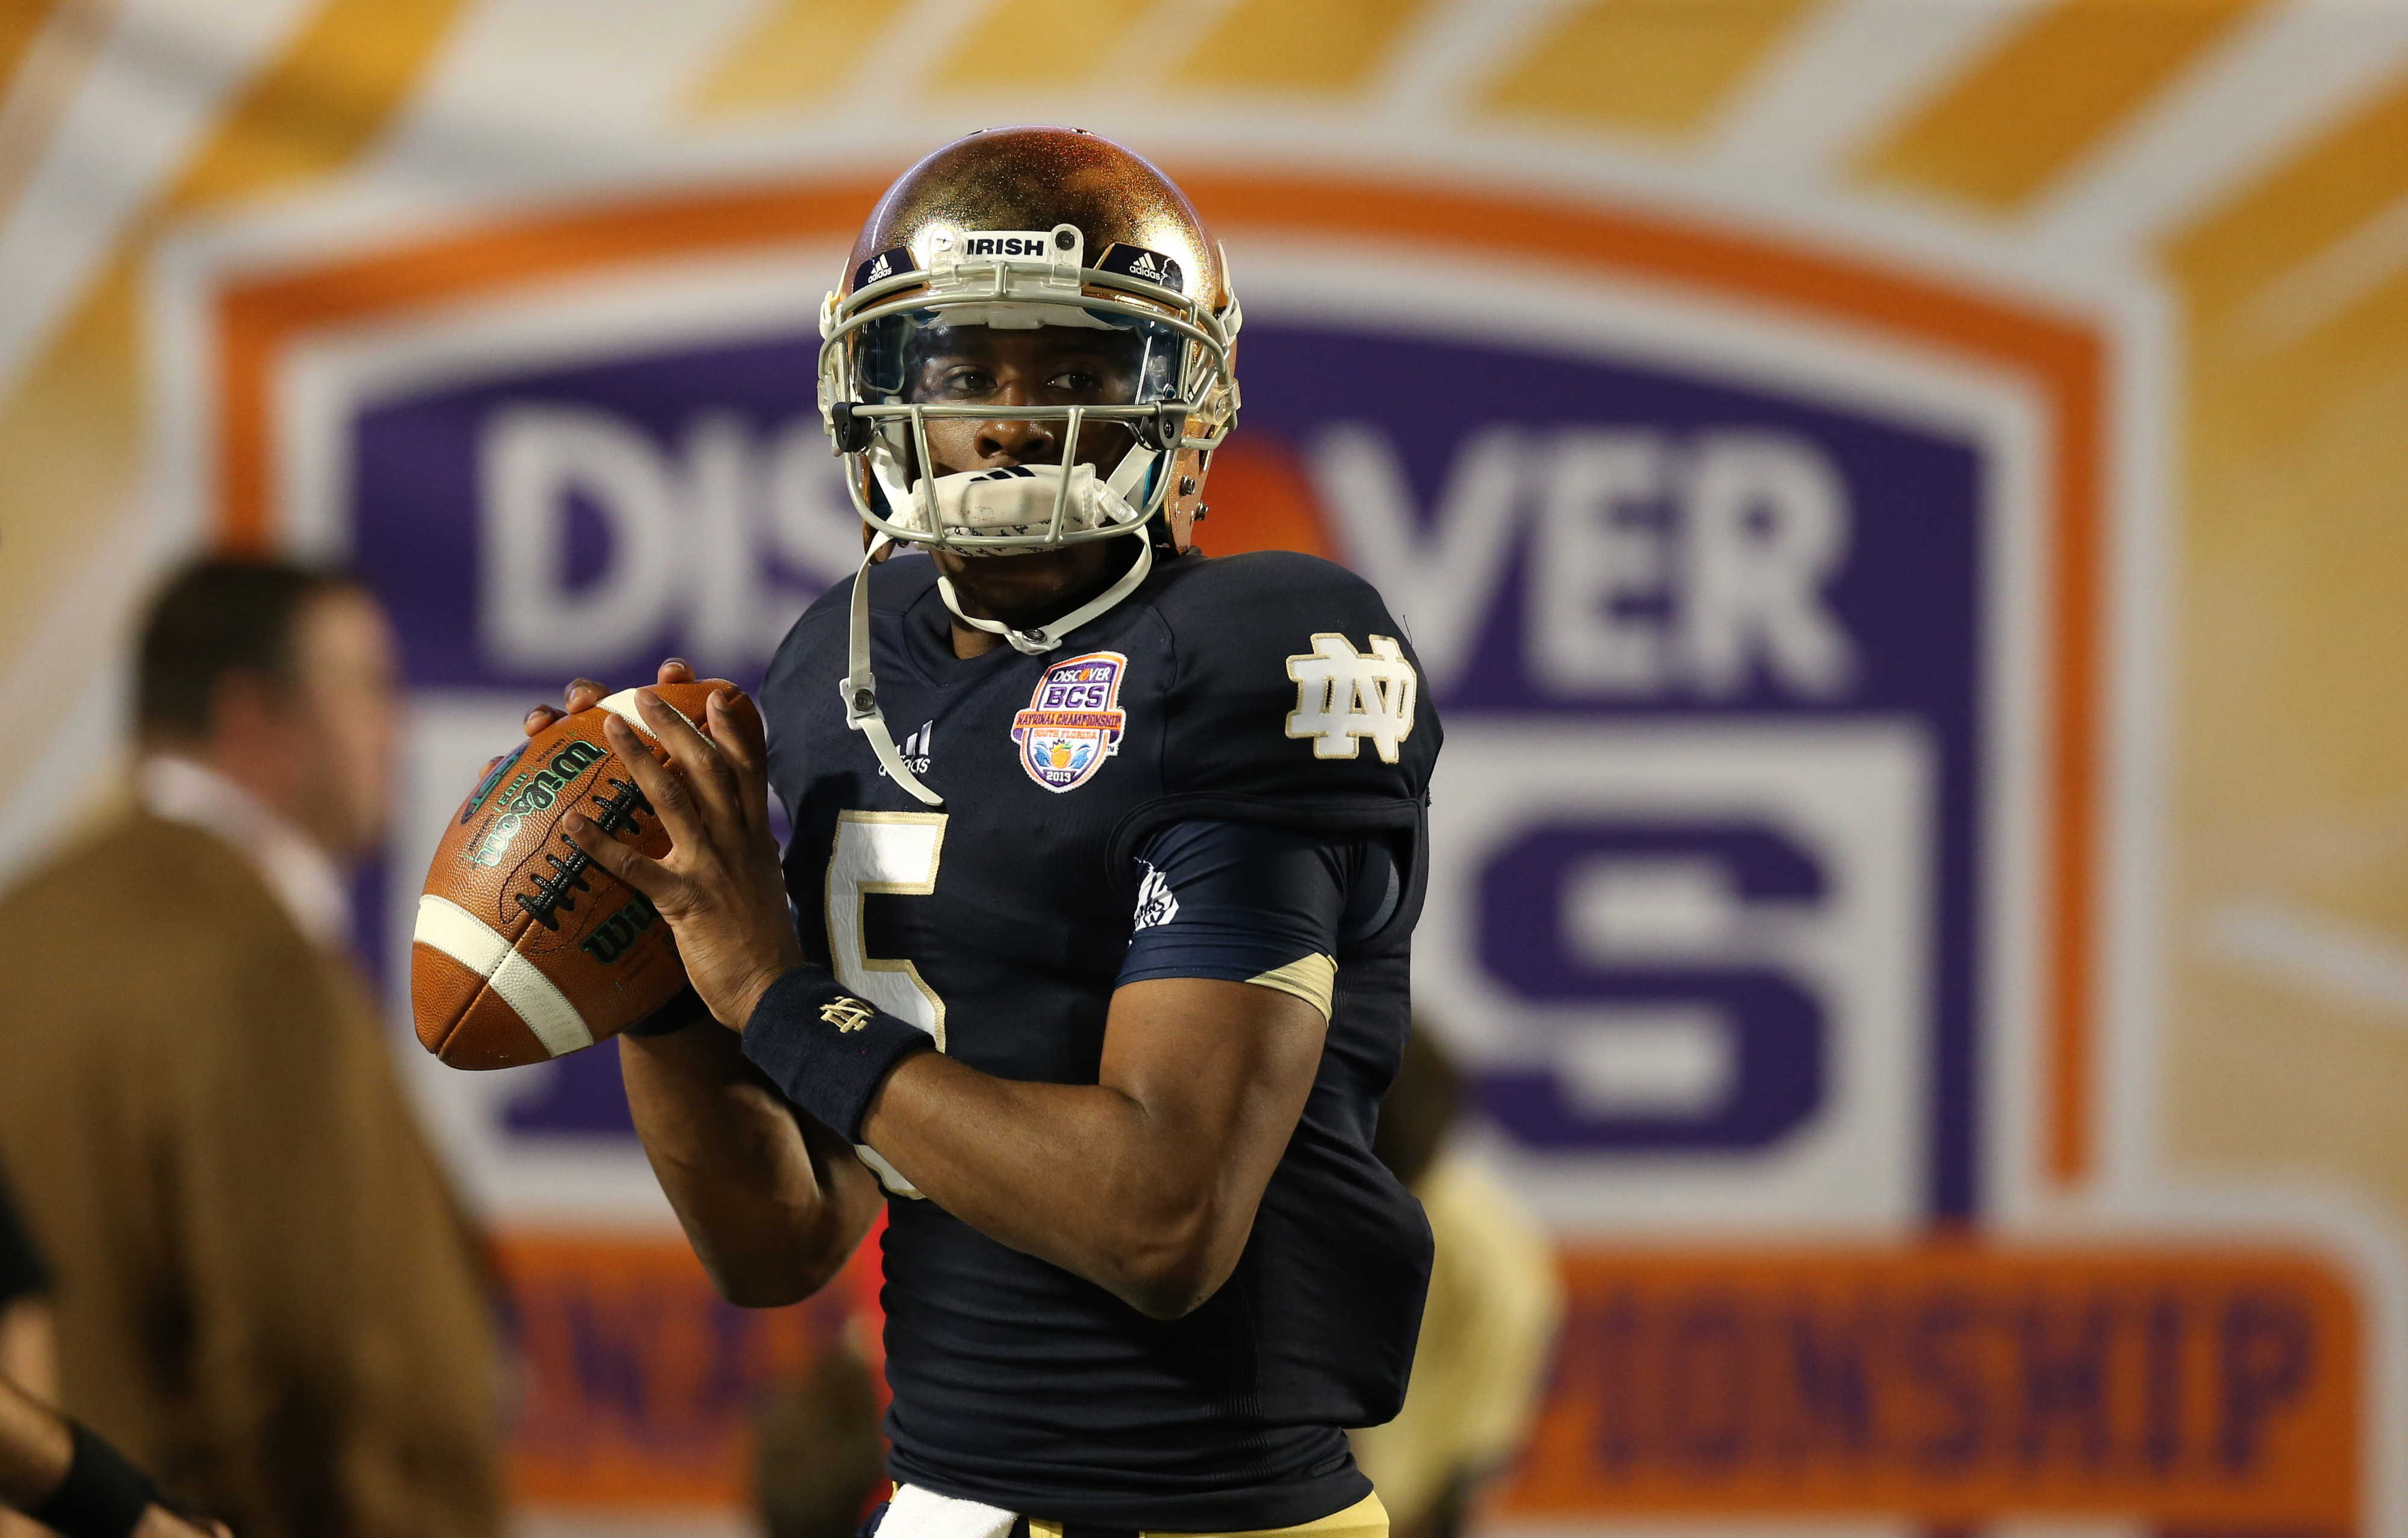 Notre Dame QB Everett Golson no longer enrolled, reportedly due to academics